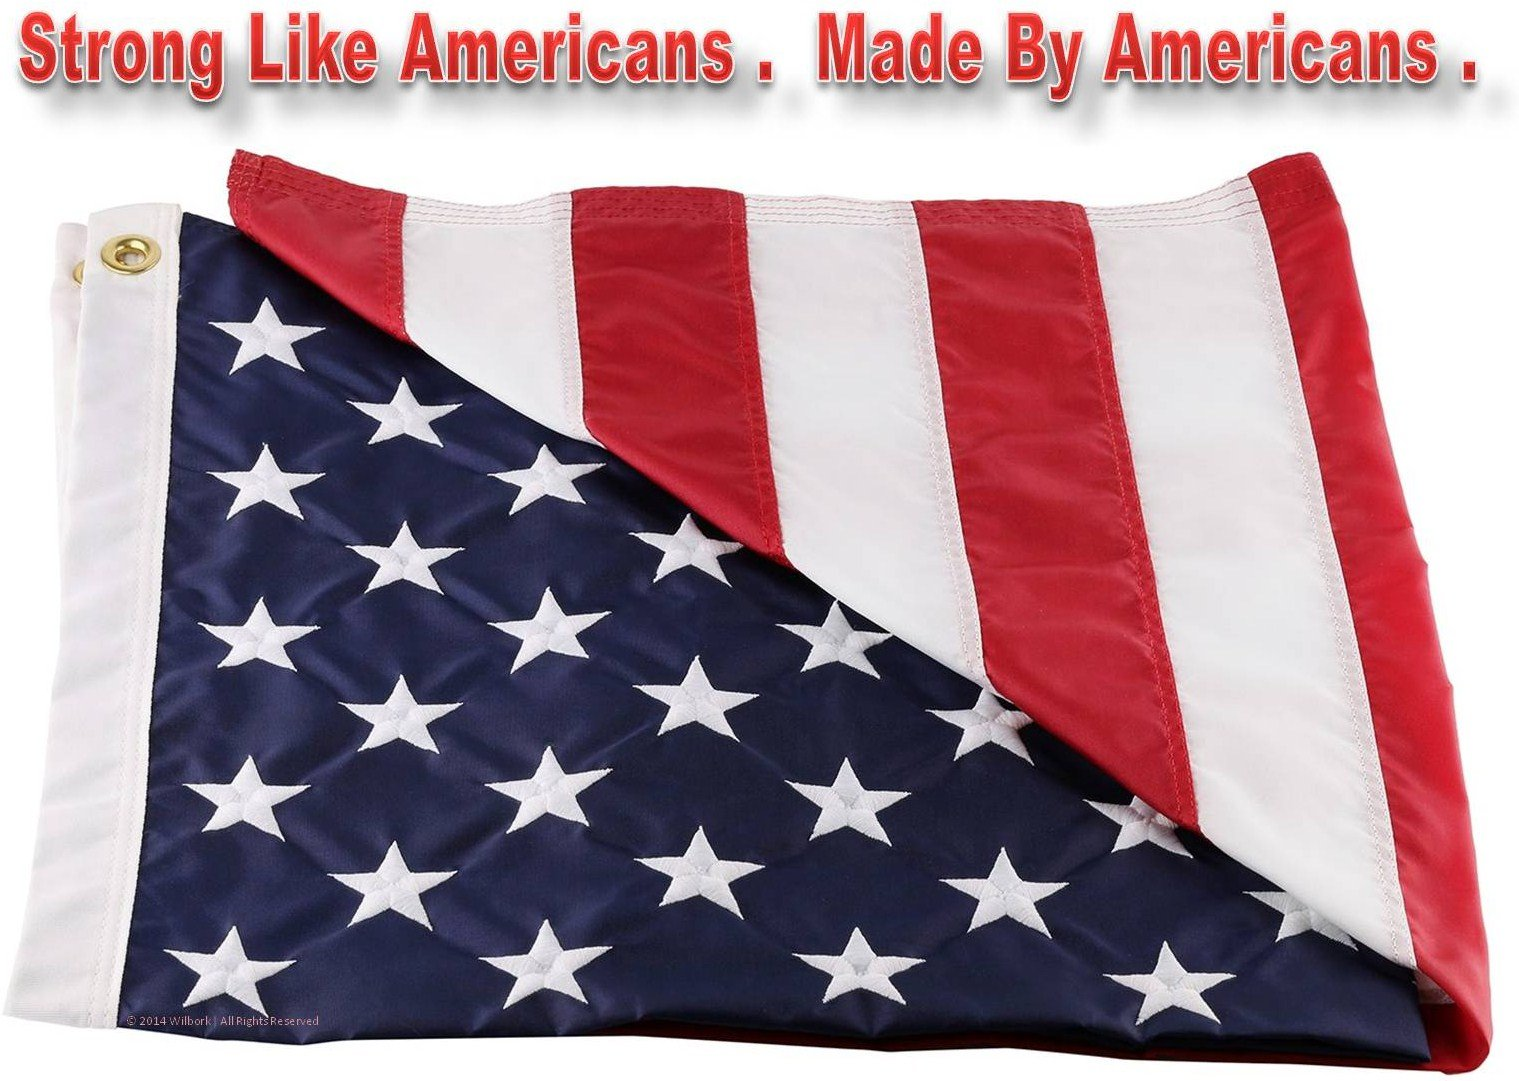 Wilbork American Flag - 100% Made in USA - Strong Like Americans Made by Americans: Embroidered Stars - Sewn Stripes 6x10 ft Outdoor Flag by Wilbork (Image #4)